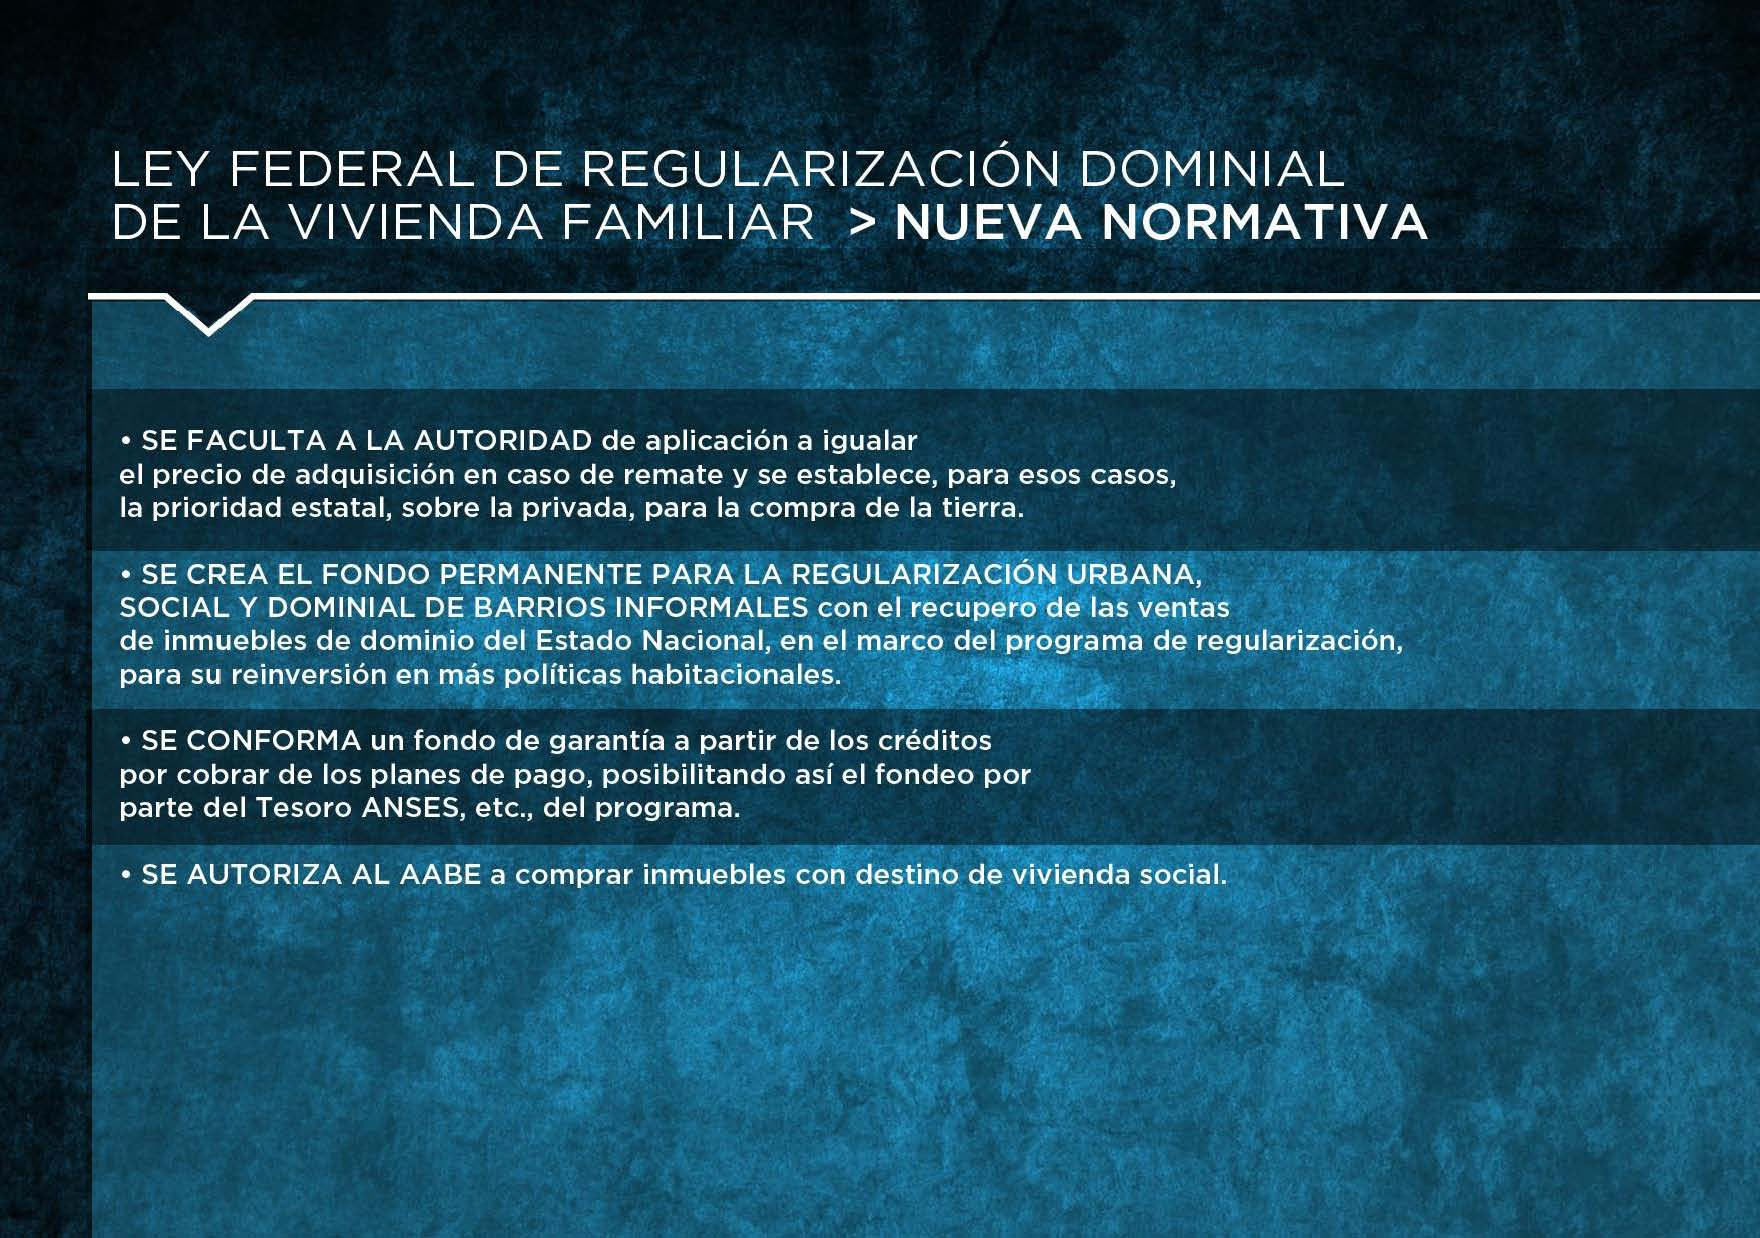 Presentamos el Plan Federal de Regularización Dominial de la Vivienda Familiar.